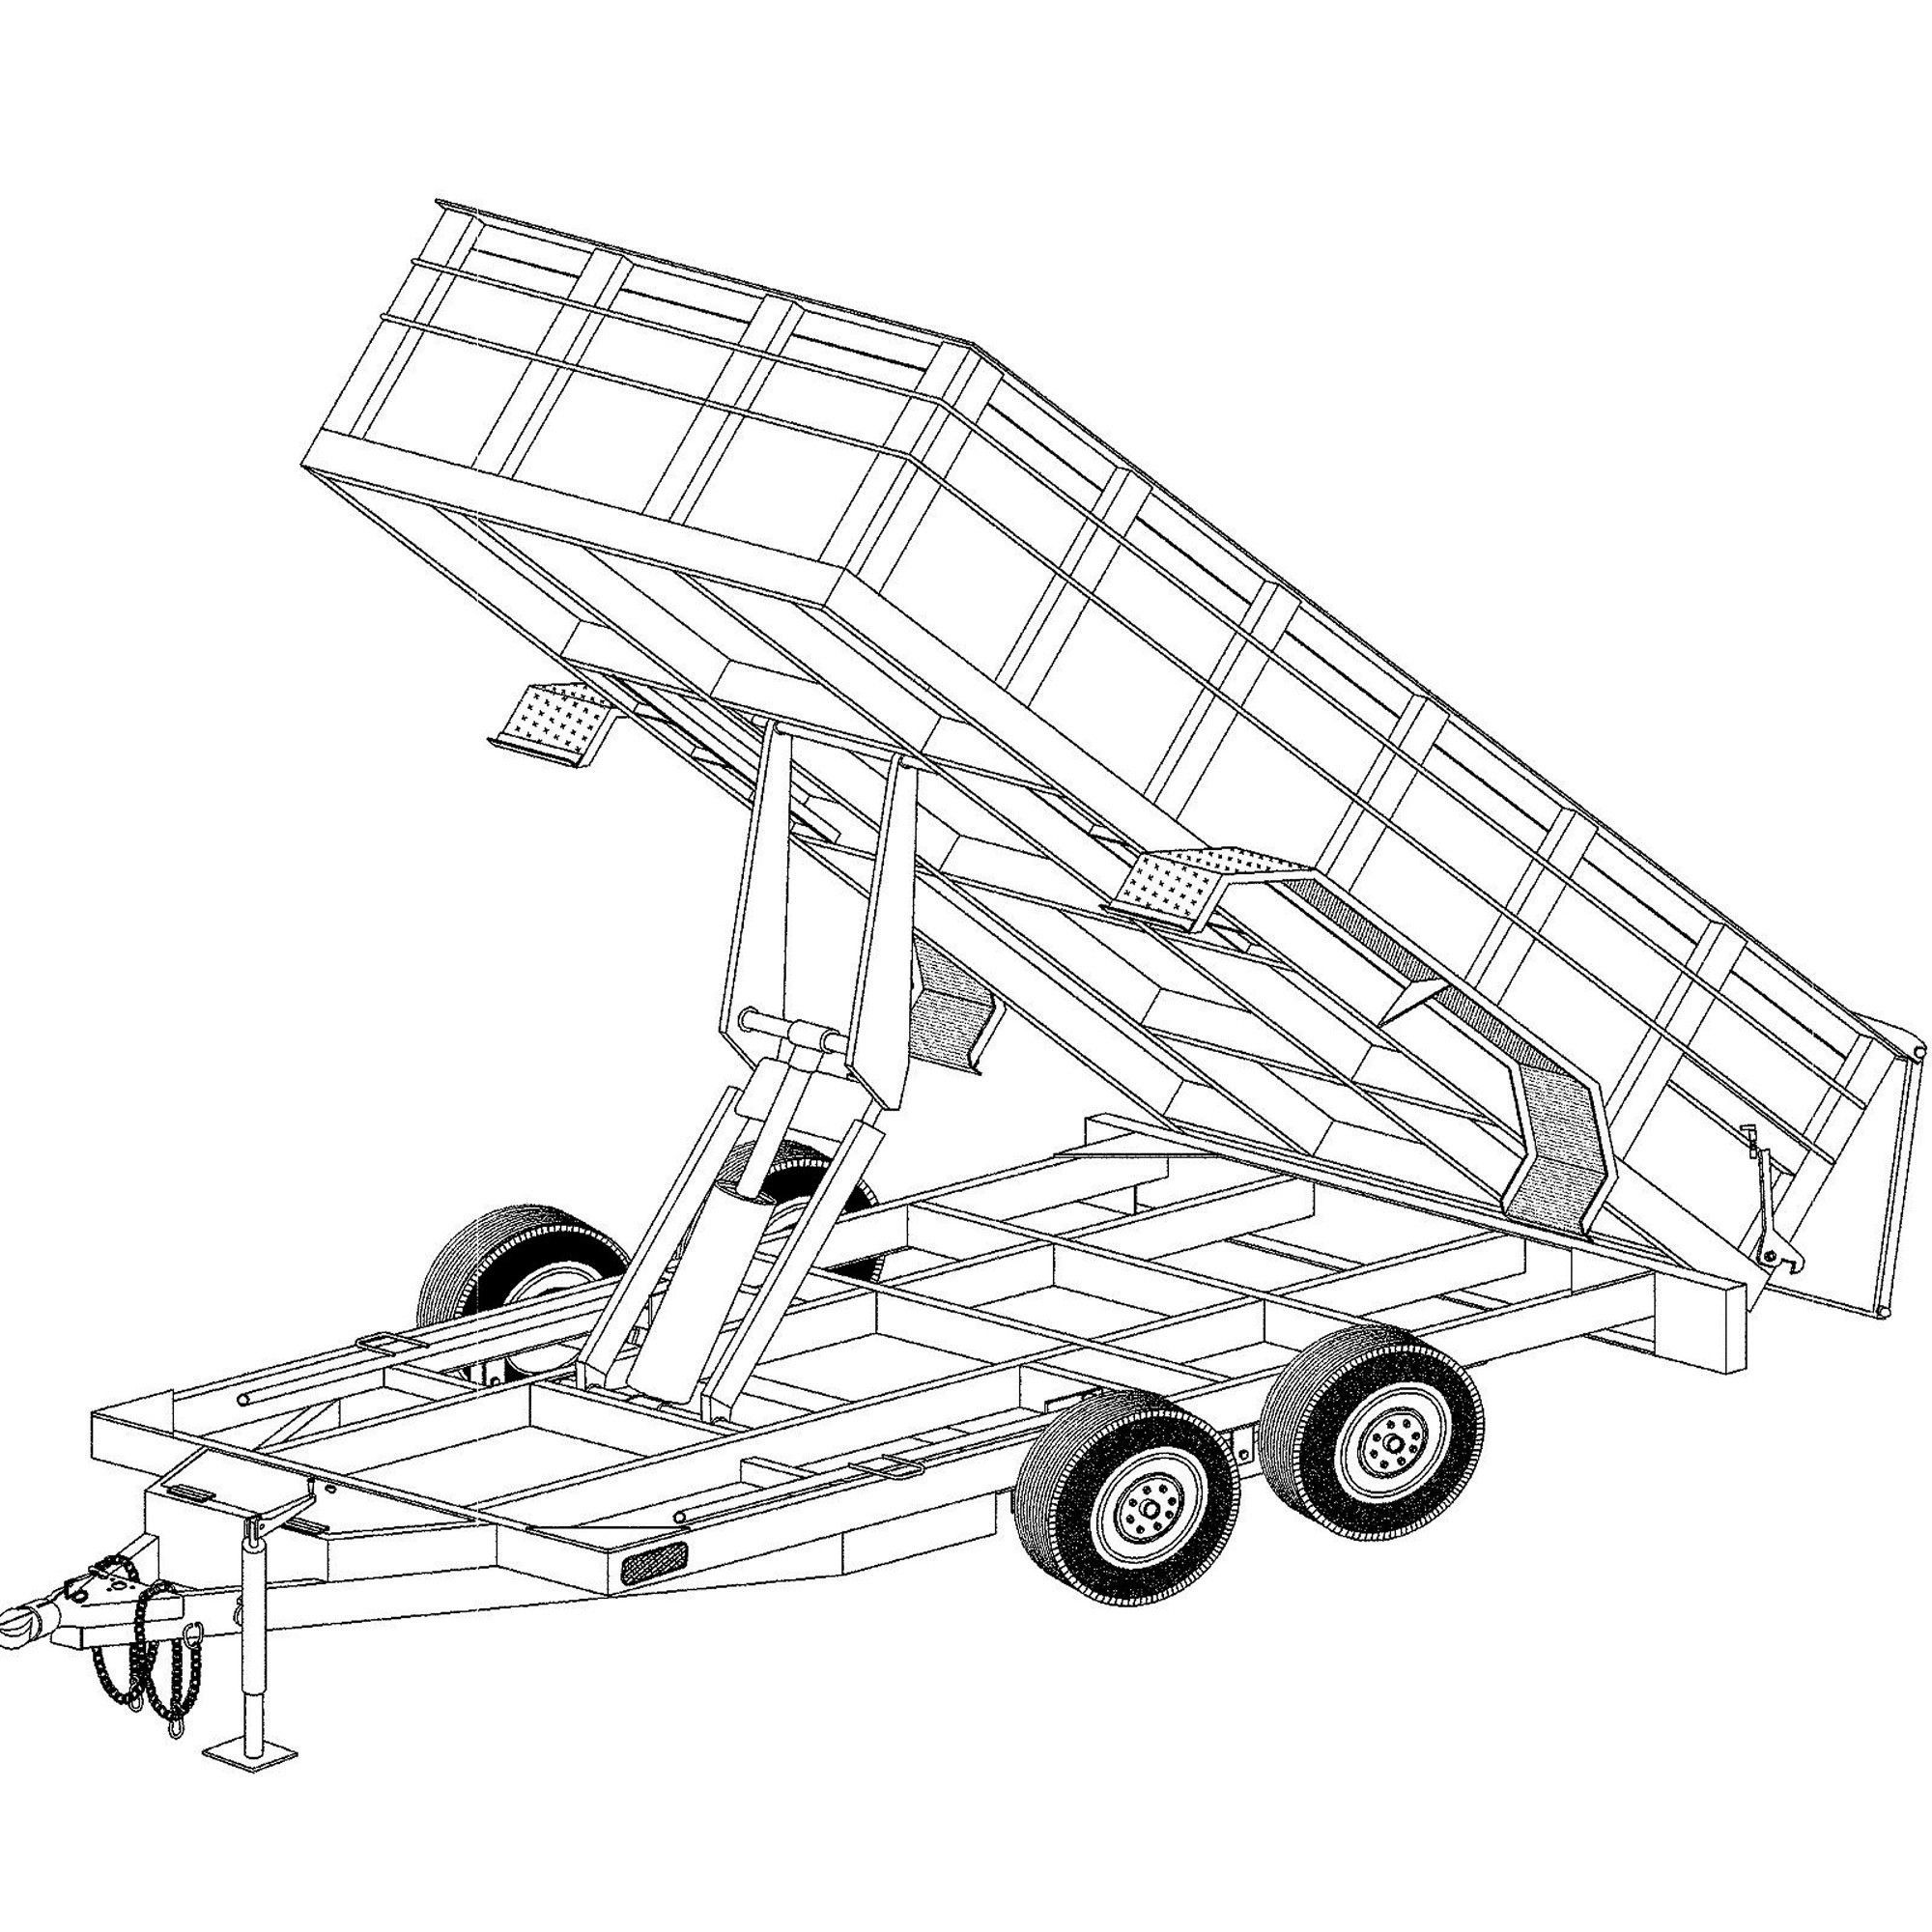 6'4″ x 14′ hydraulic dump trailer plans – model 14hd